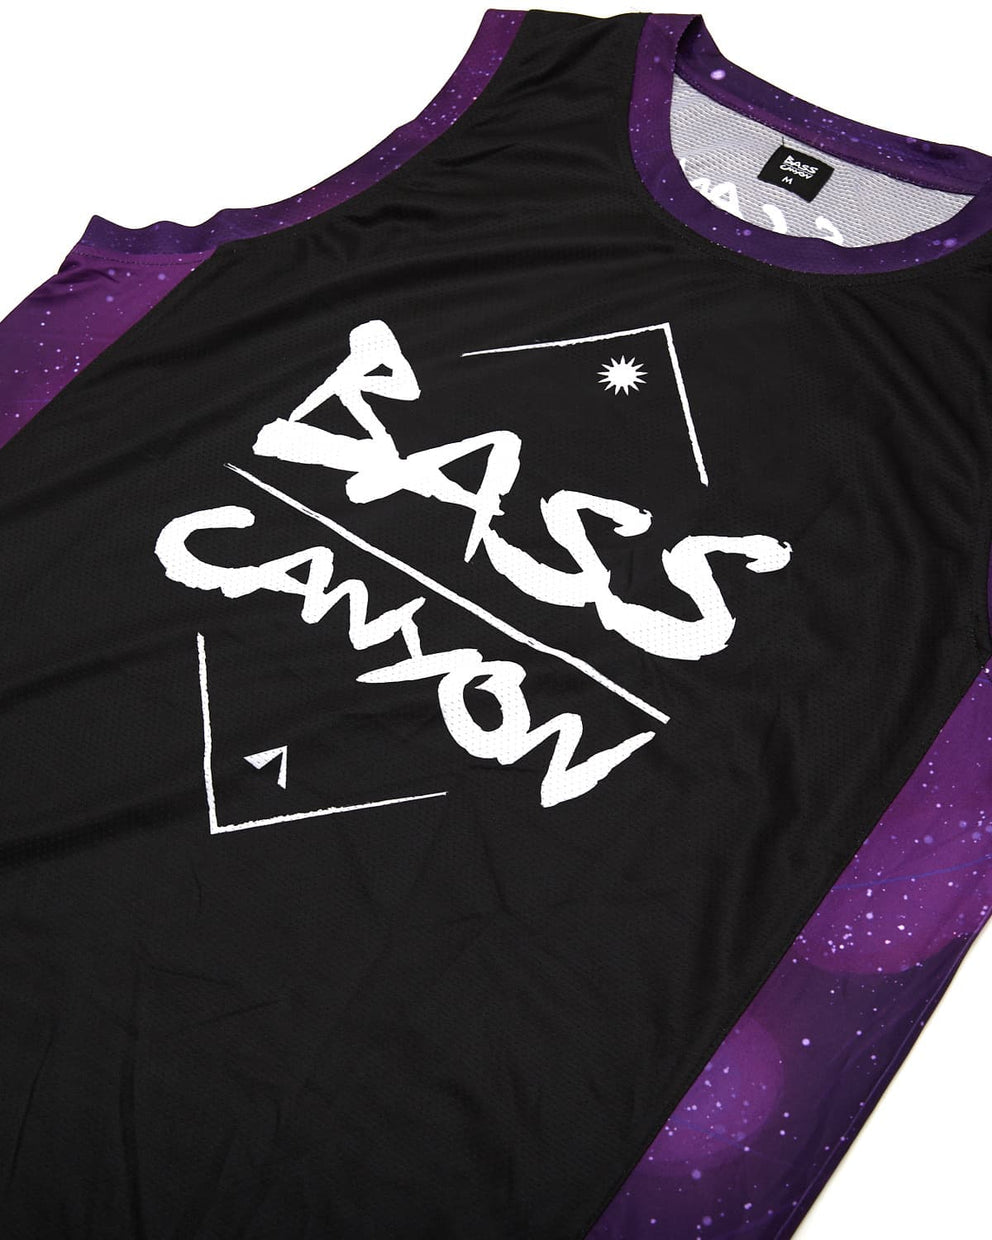 Excision 'Bass Canyon 2019' Basketball Jersey - Black/Purple